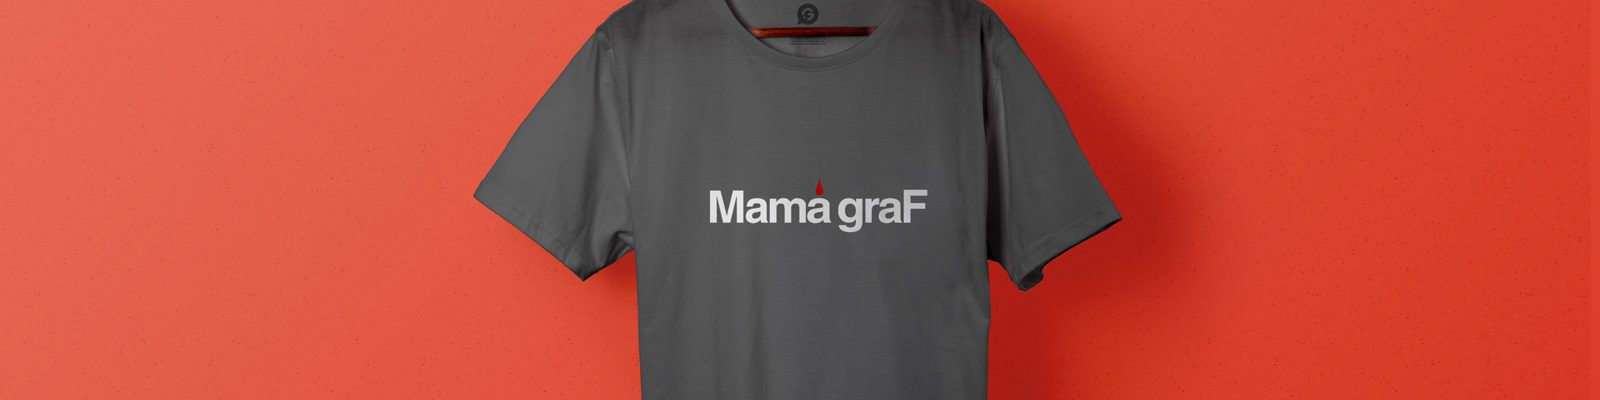 Embroidered workwear for Mama graF - Header Image